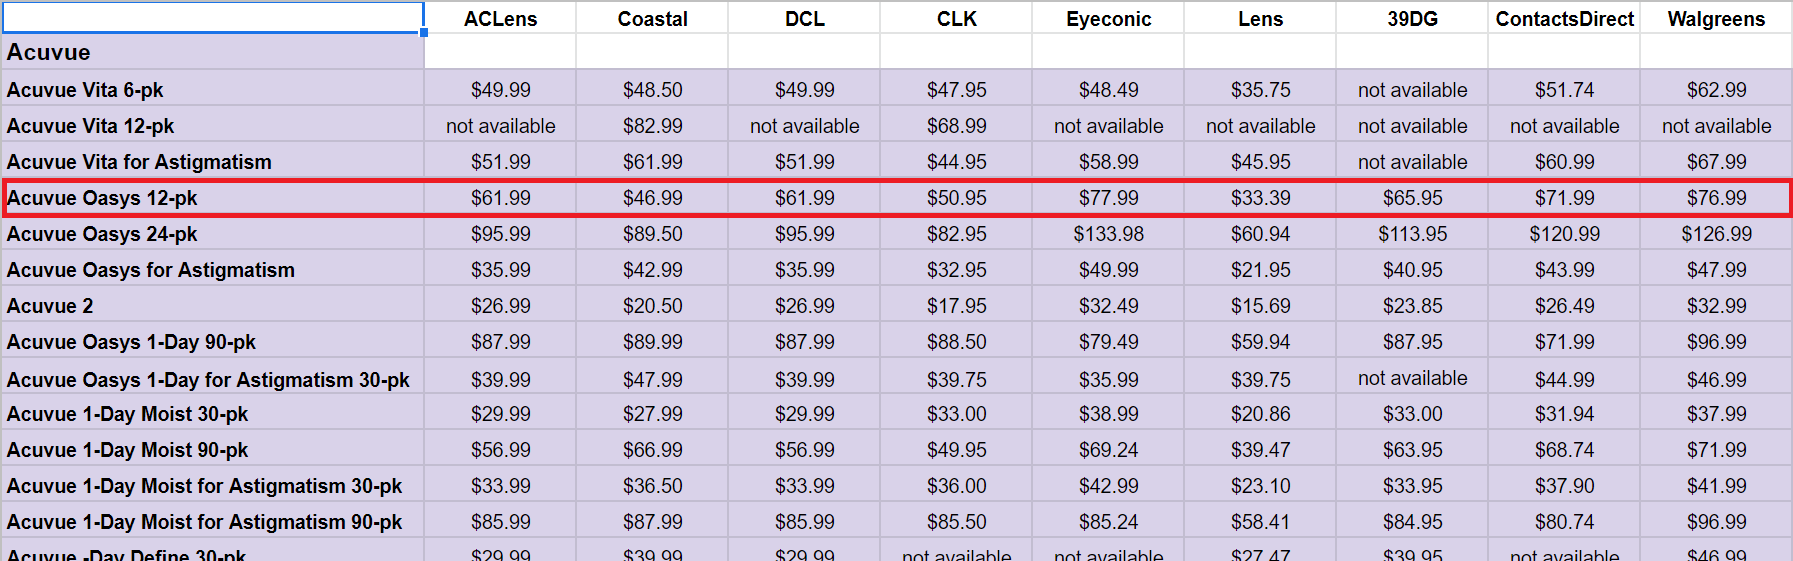 Contact Lens Price Comparison Chart Screenshot